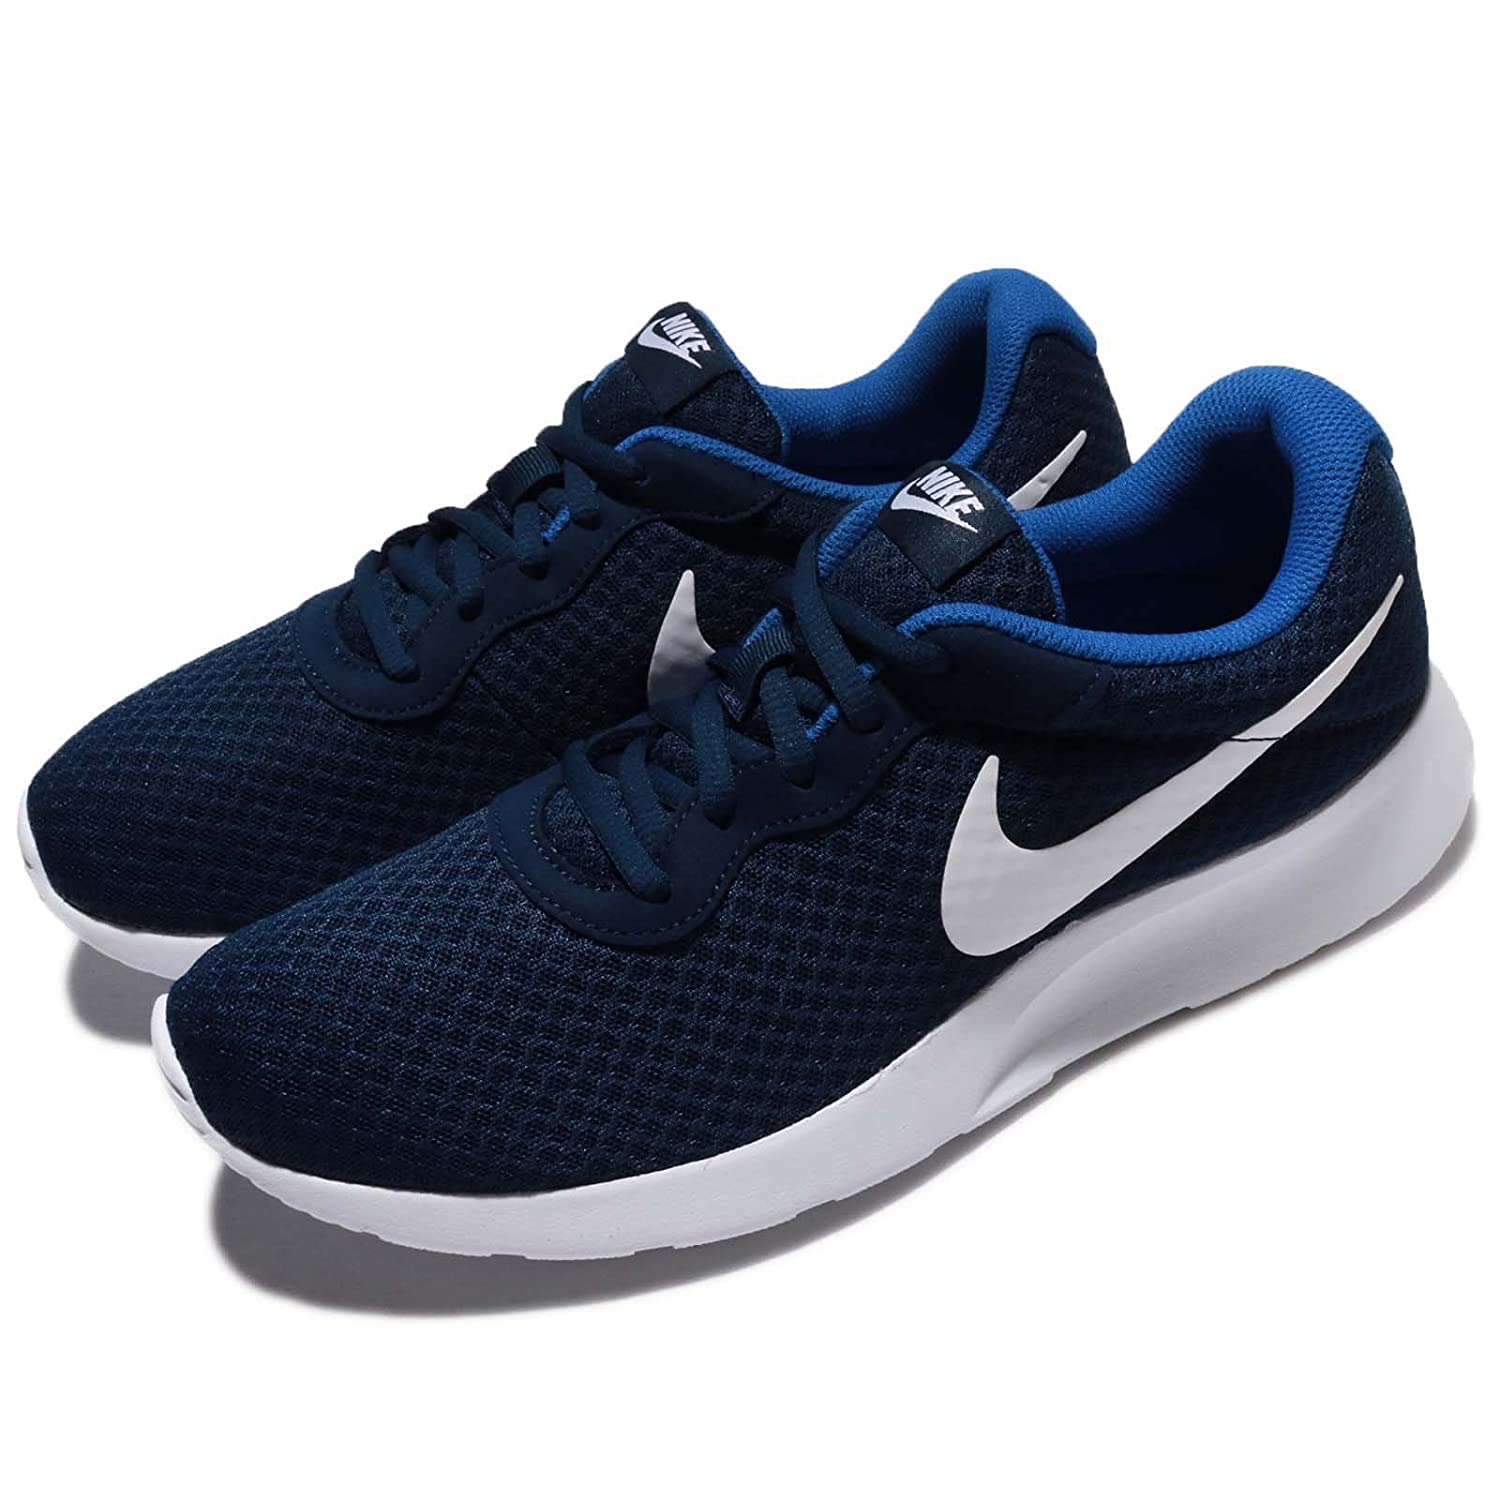 quality design online for sale newest collection Nike Herren Tanjun Sneaker